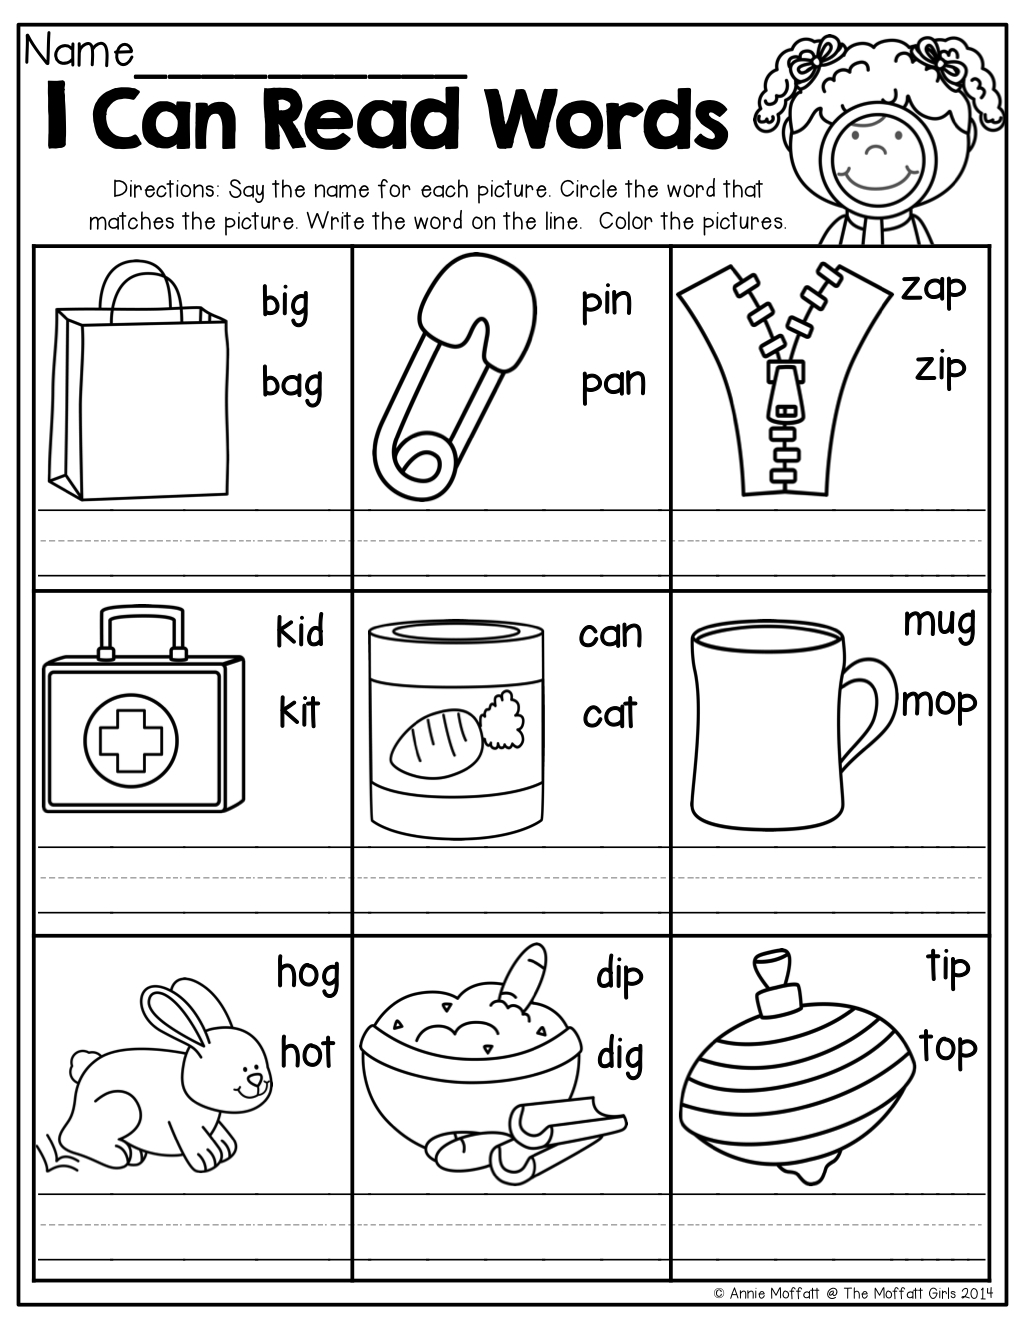 Cvc Worksheets For Kindergarten For Free Download - Math Worksheet | Cvc Worksheet Printable